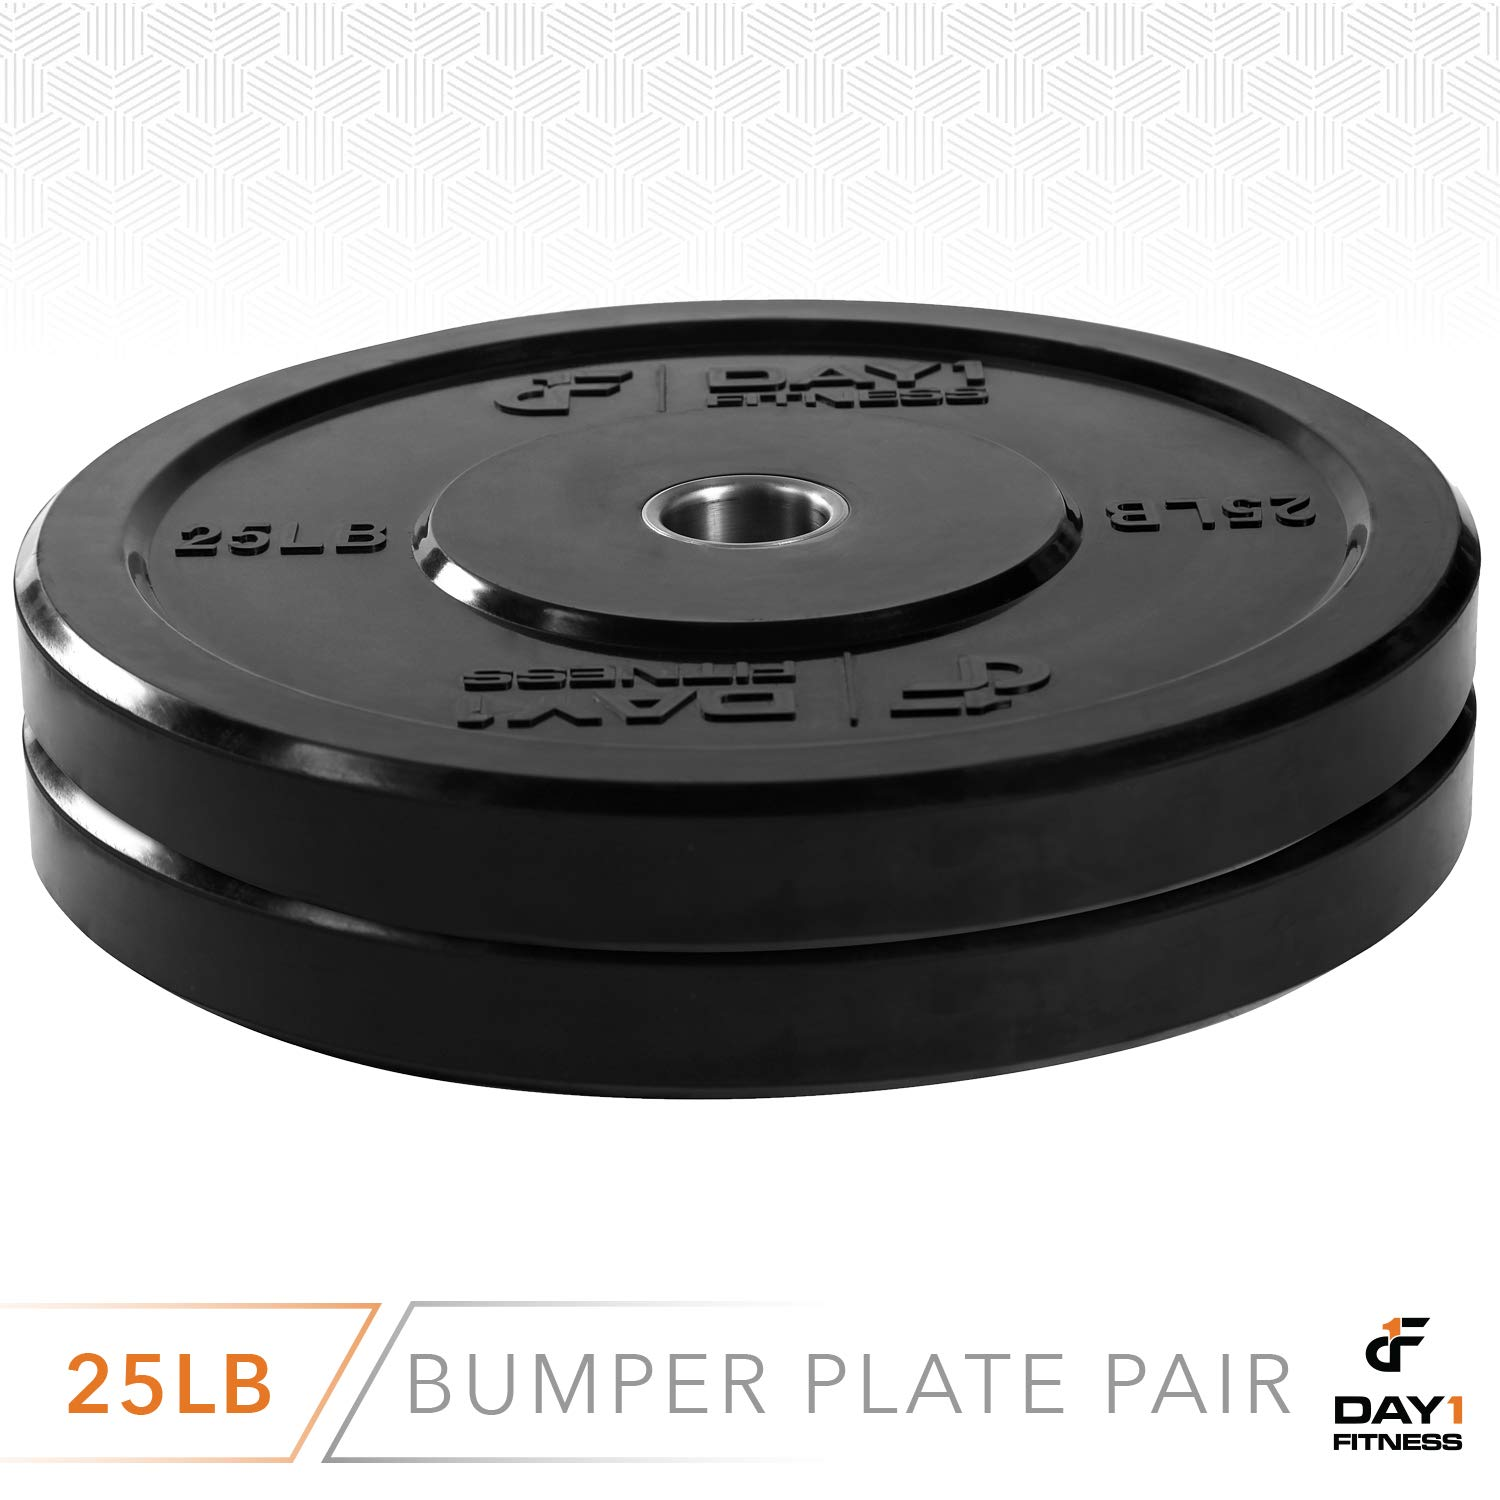 "Day 1 Fitness Olympic Bumper Weighted Plate 2"" for Barbells, Bars – 25 lb Set of 2 Plates - Shock-Absorbing, Minimal Bounce Steel Weights with Bumpers for Lifting, Strength Training, and Working Out by Day 1 Fitness (Image #3)"